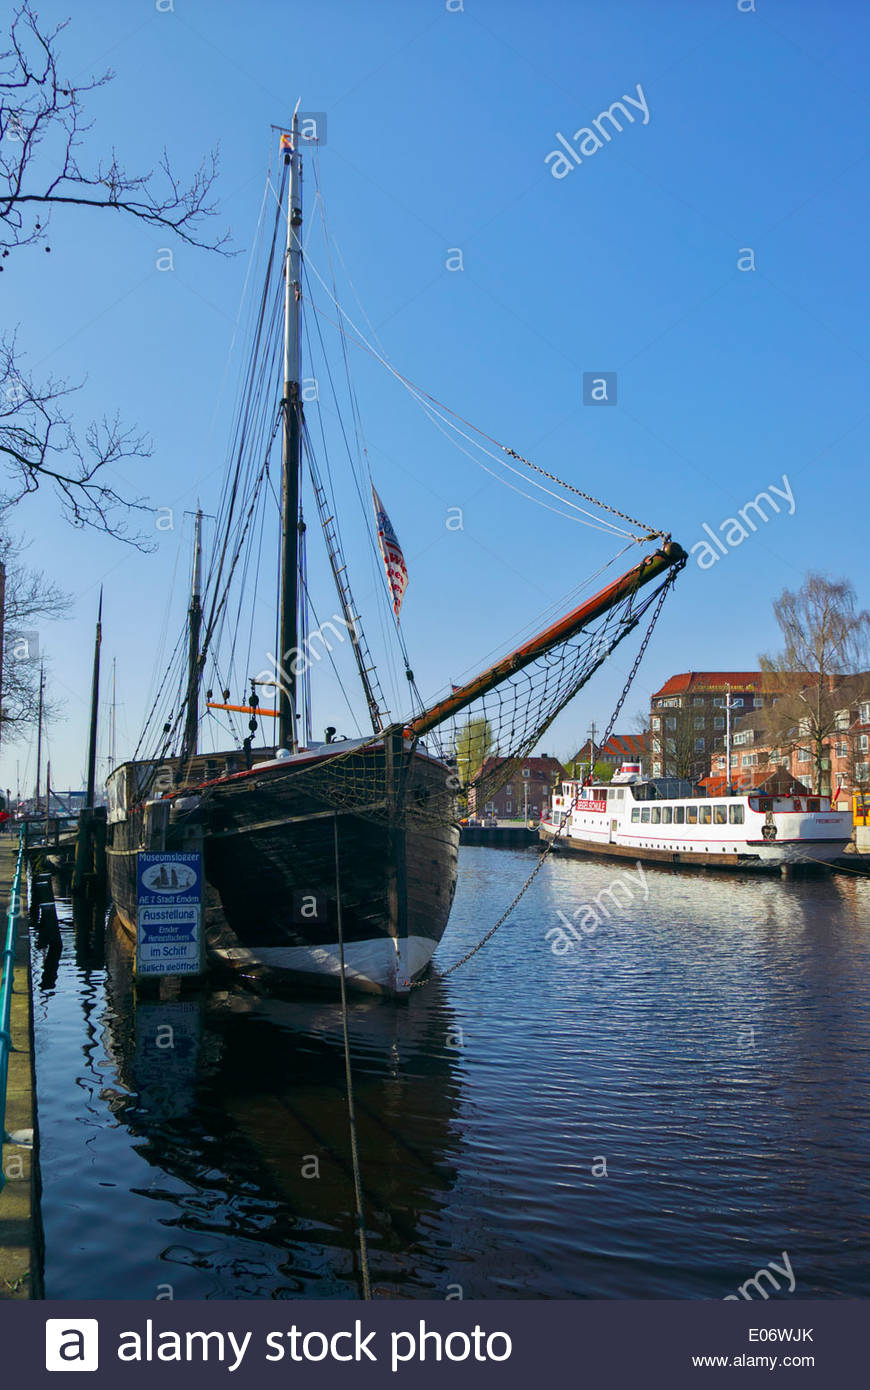 The Logger (lugger) AE-7 Emden, once a part of the city's active herring fishing fleet, is now a museum ship. - Stock Image